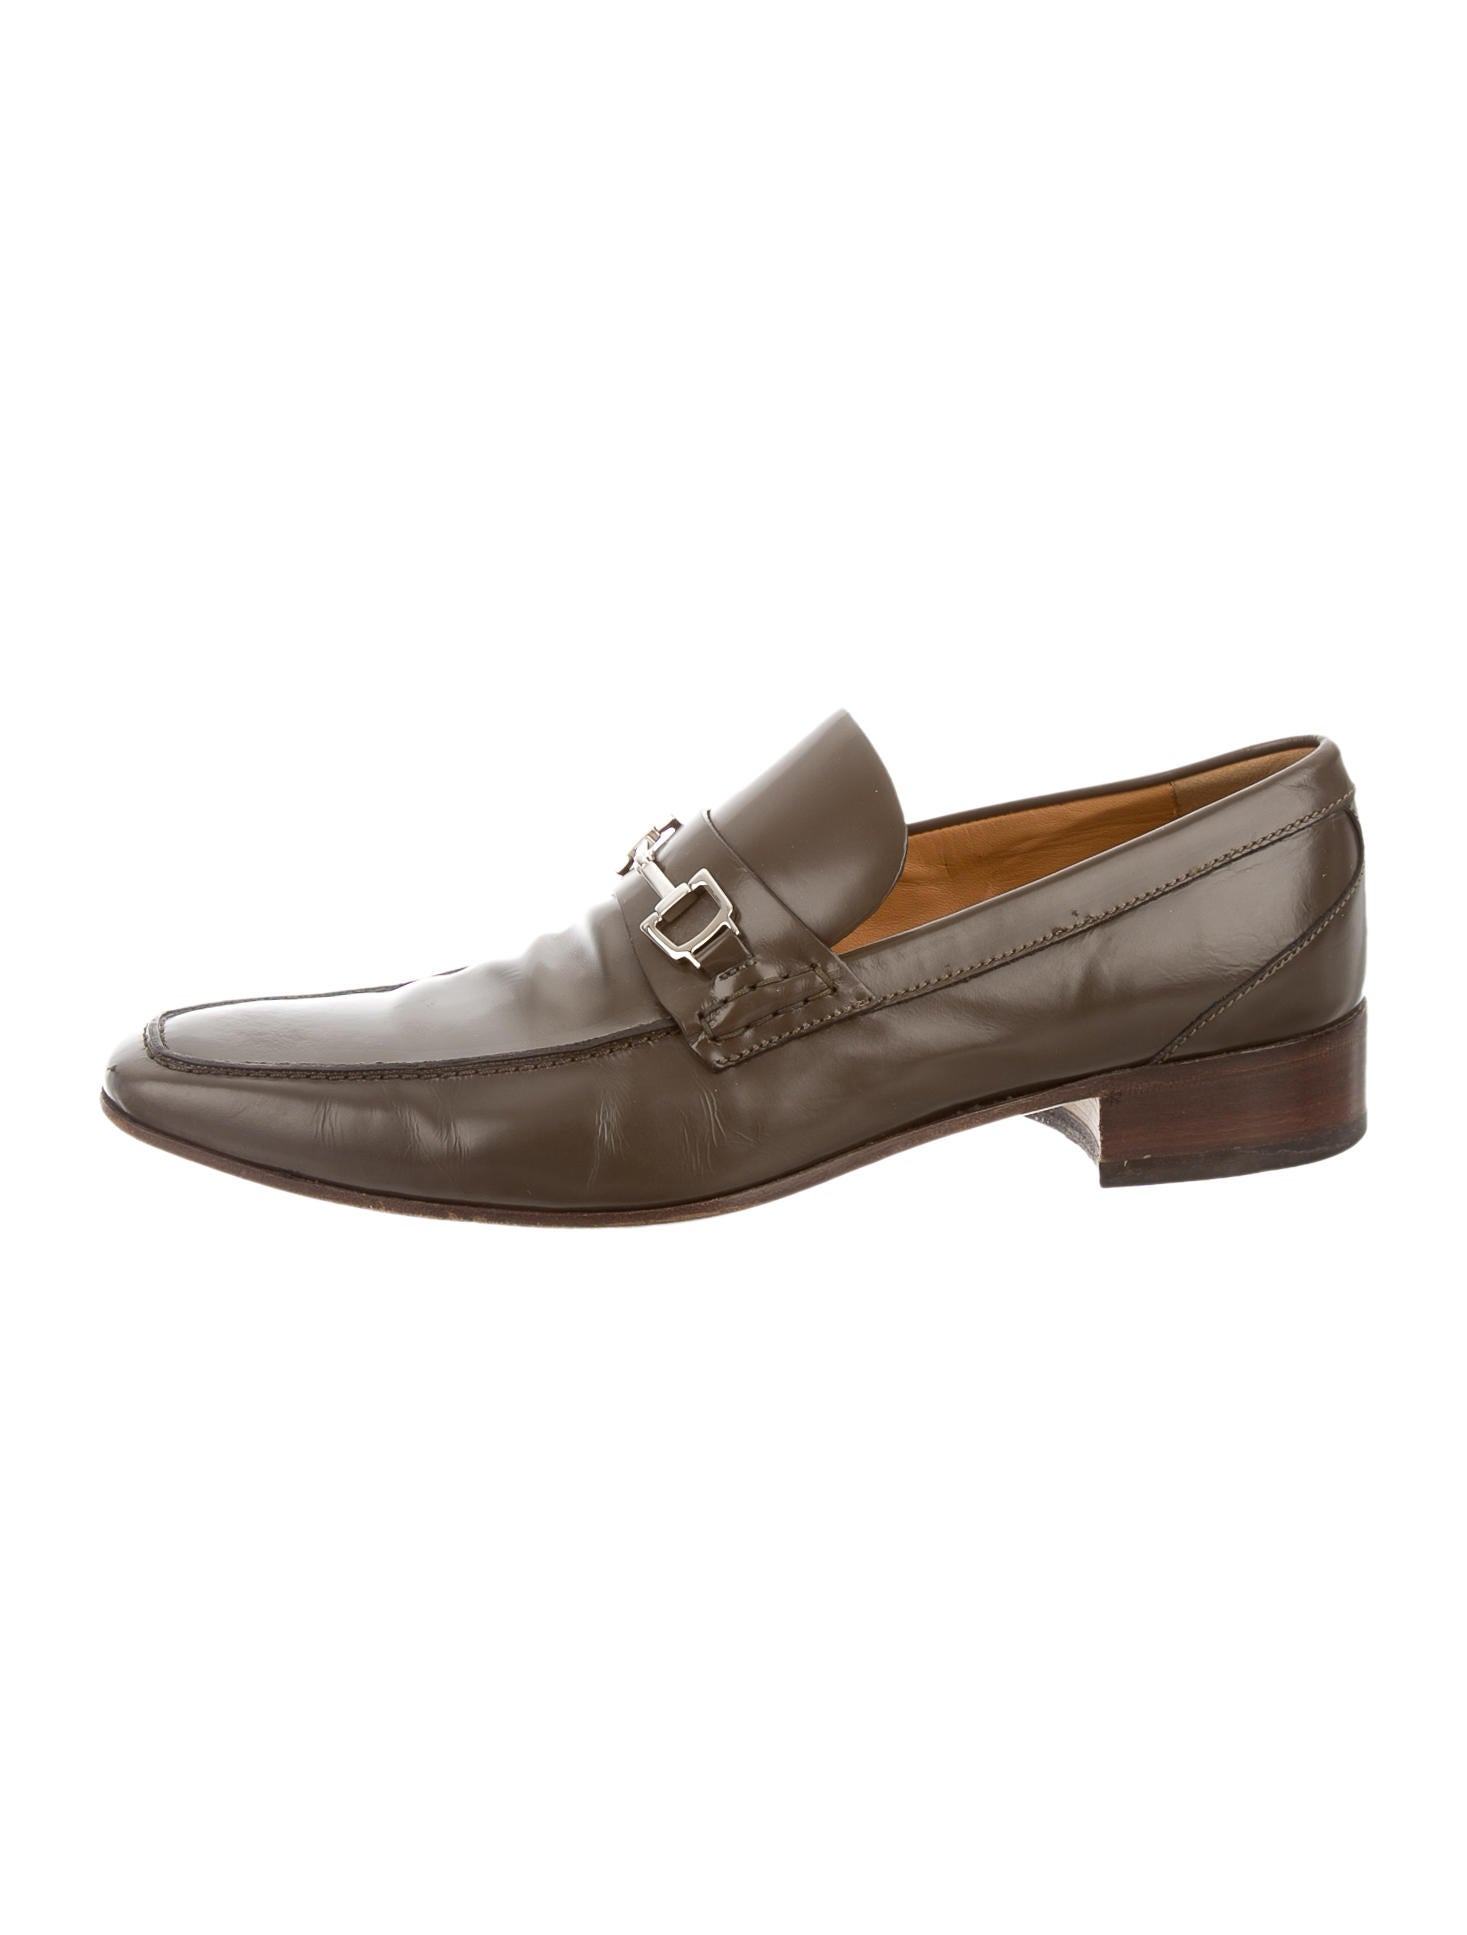 Gucci Loafers - Shoes - GUC66000 | The RealReal